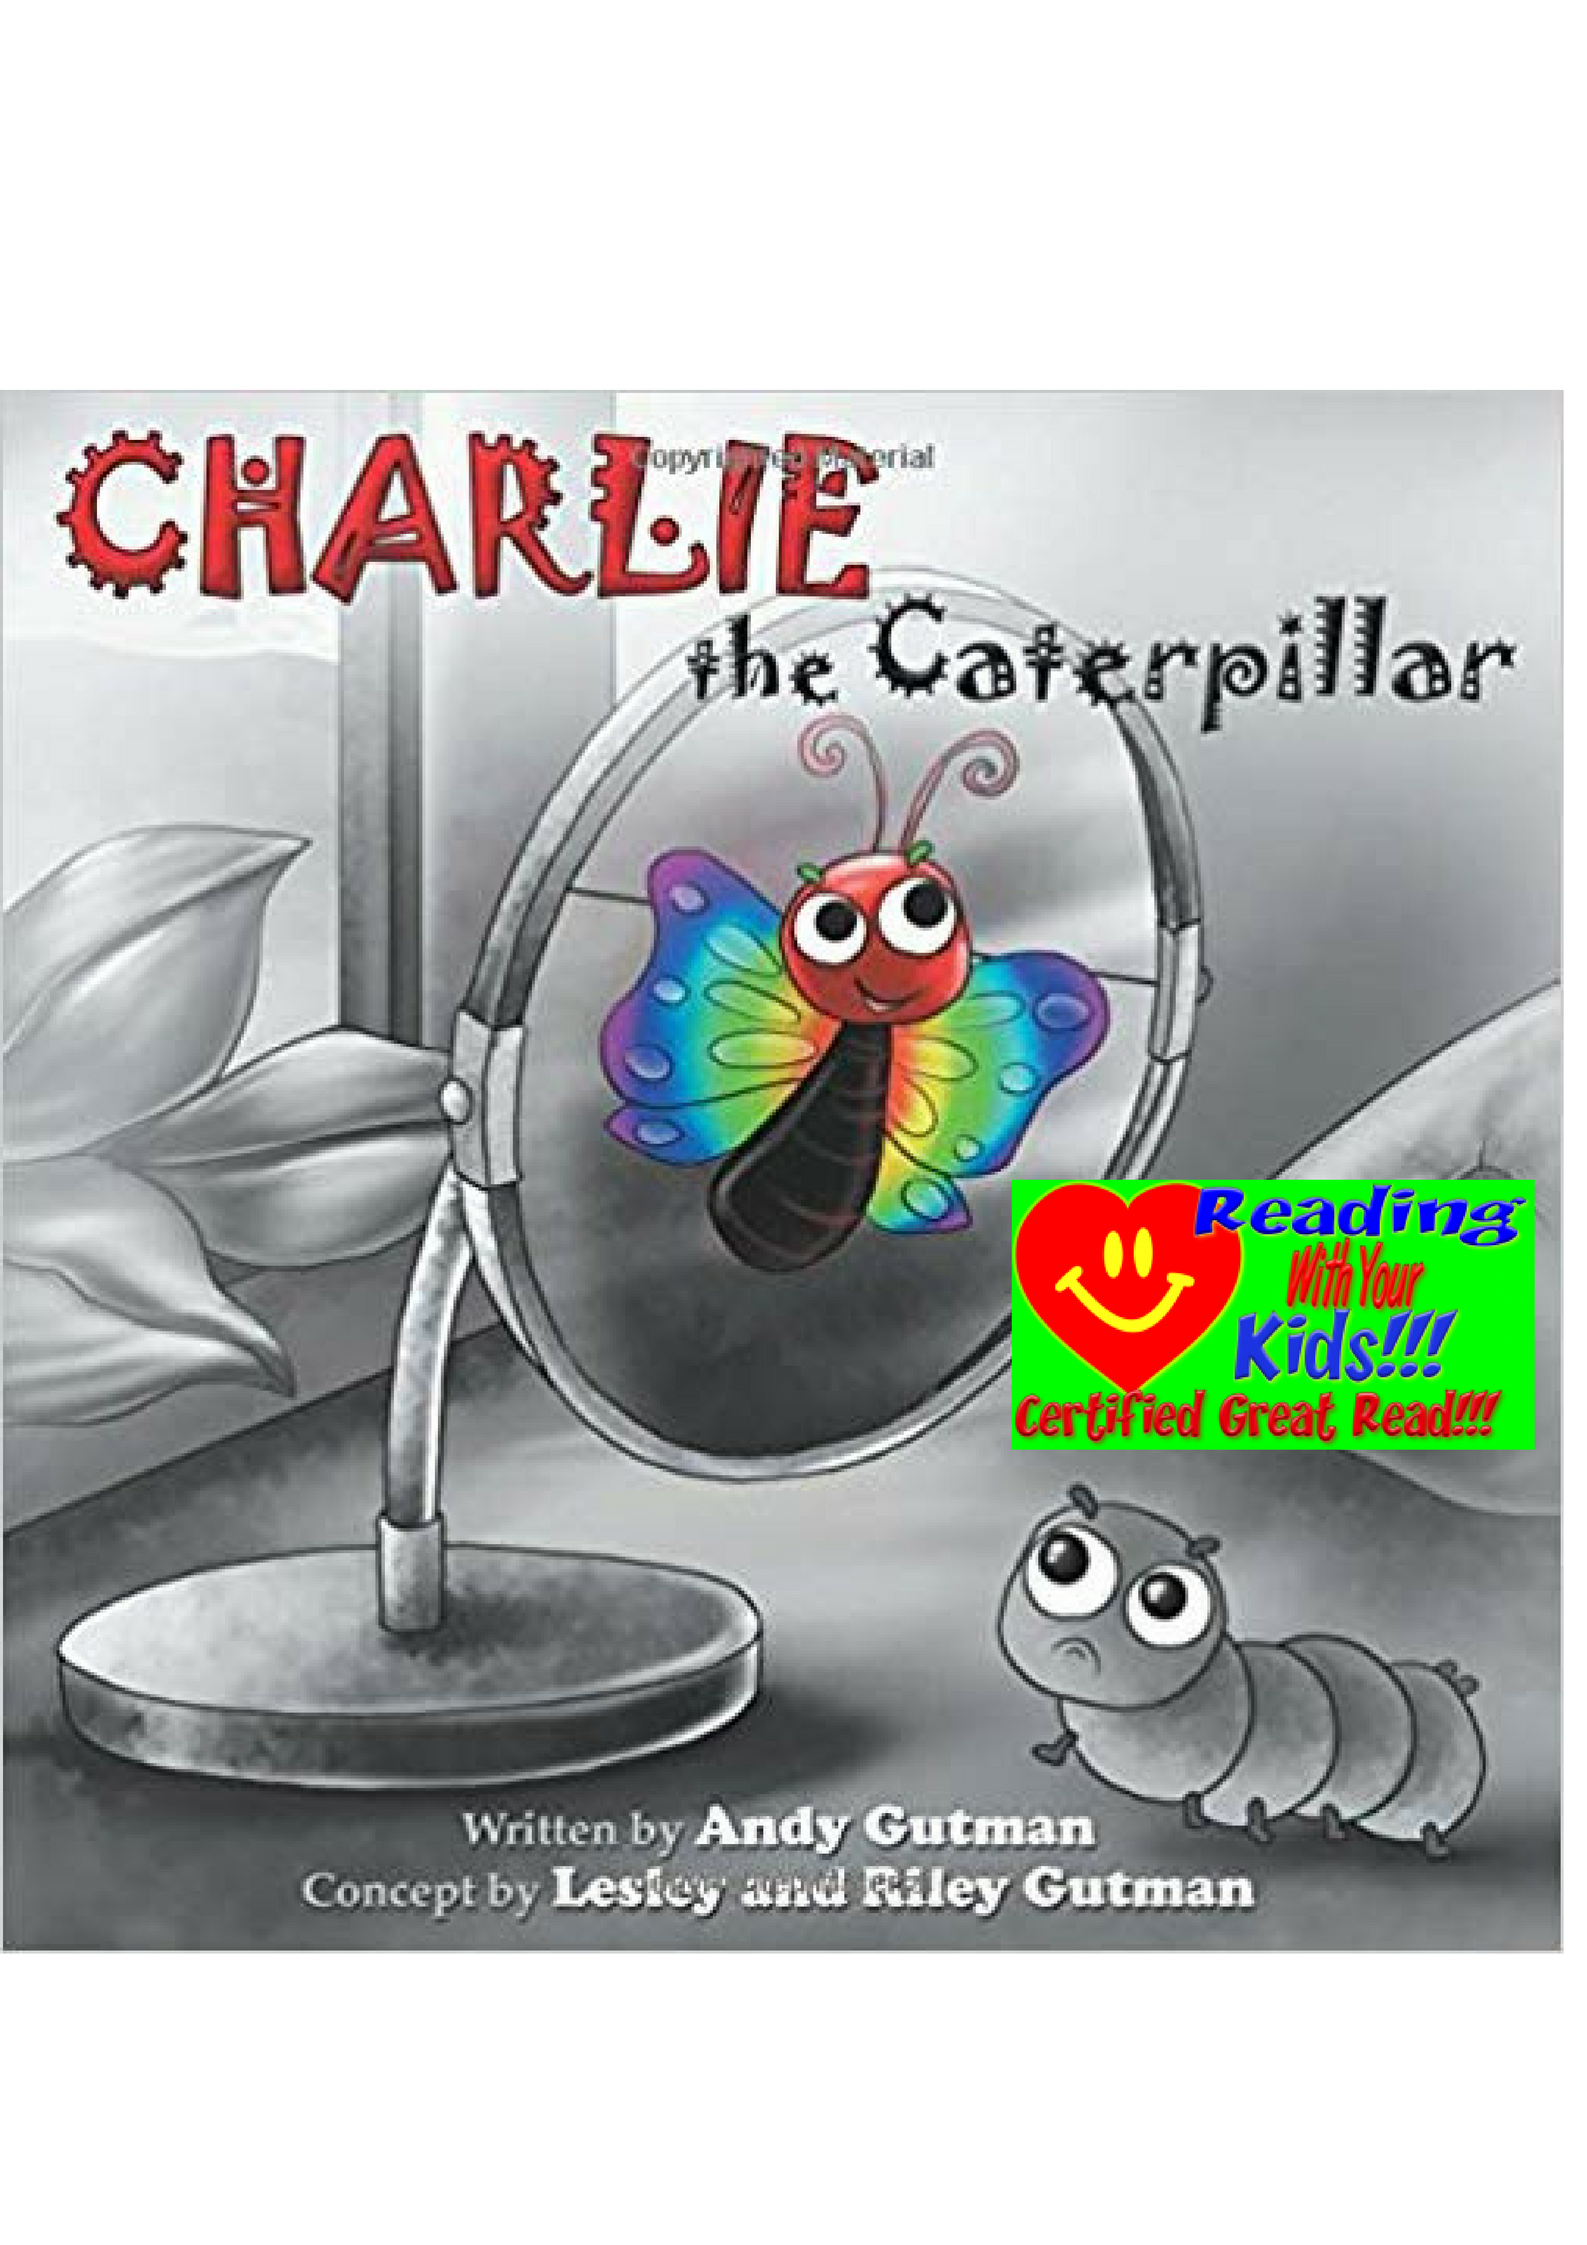 Charlie the Caterpillar by Andy Gutman: #RWYK Great Read Certified